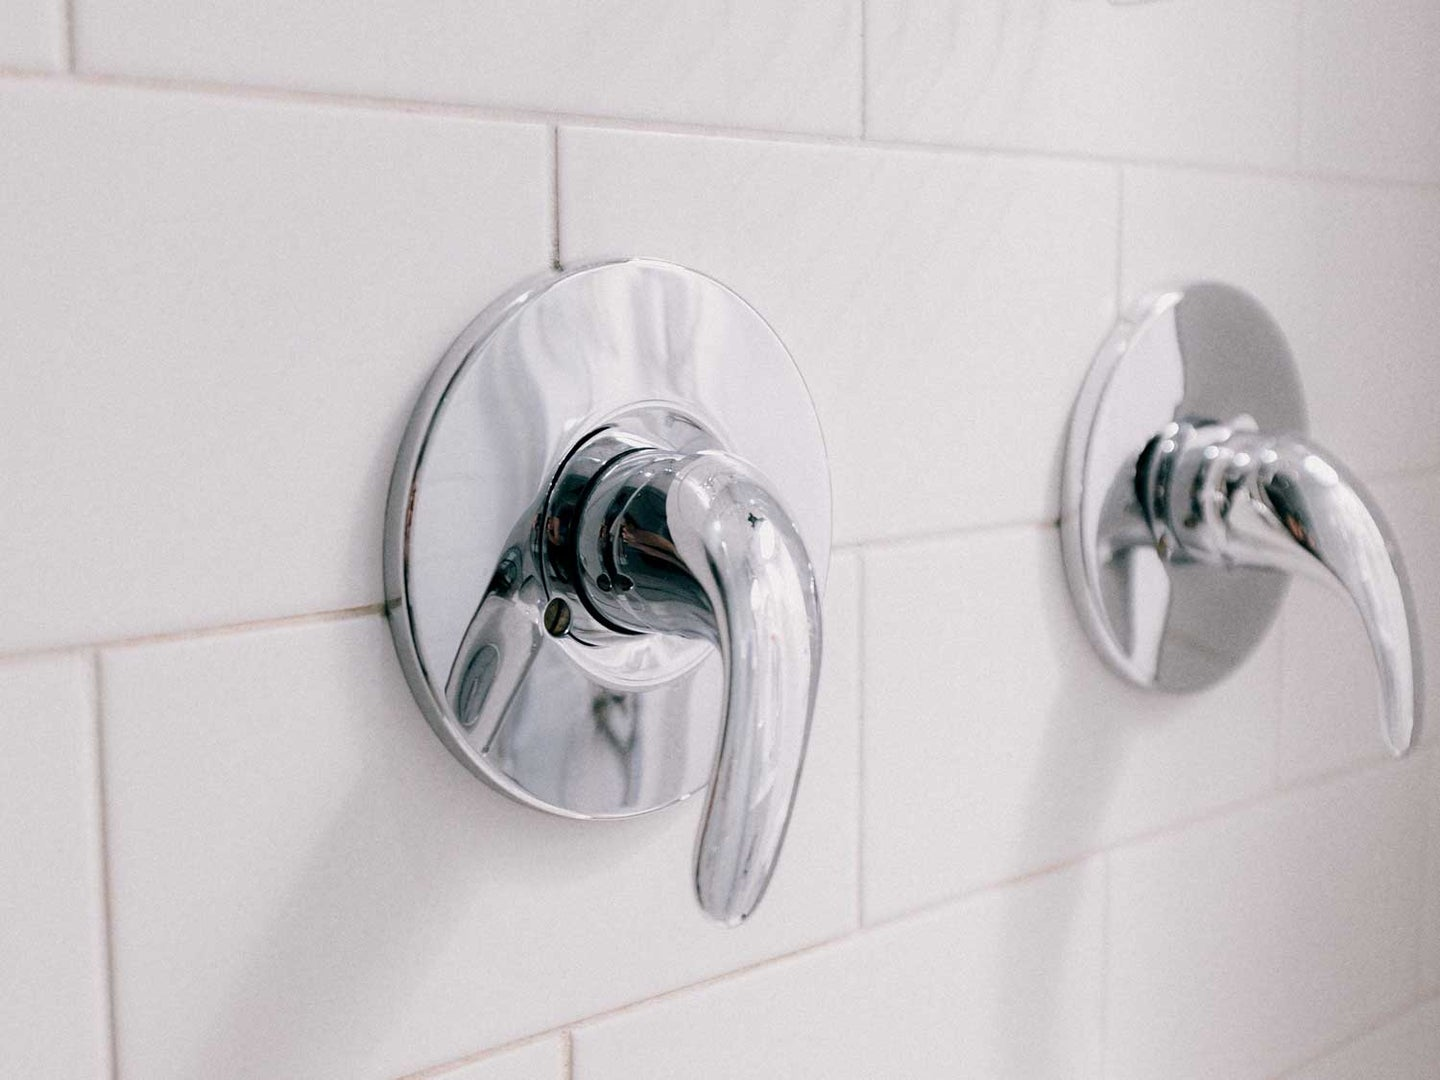 Stainless steel shower faucet handles